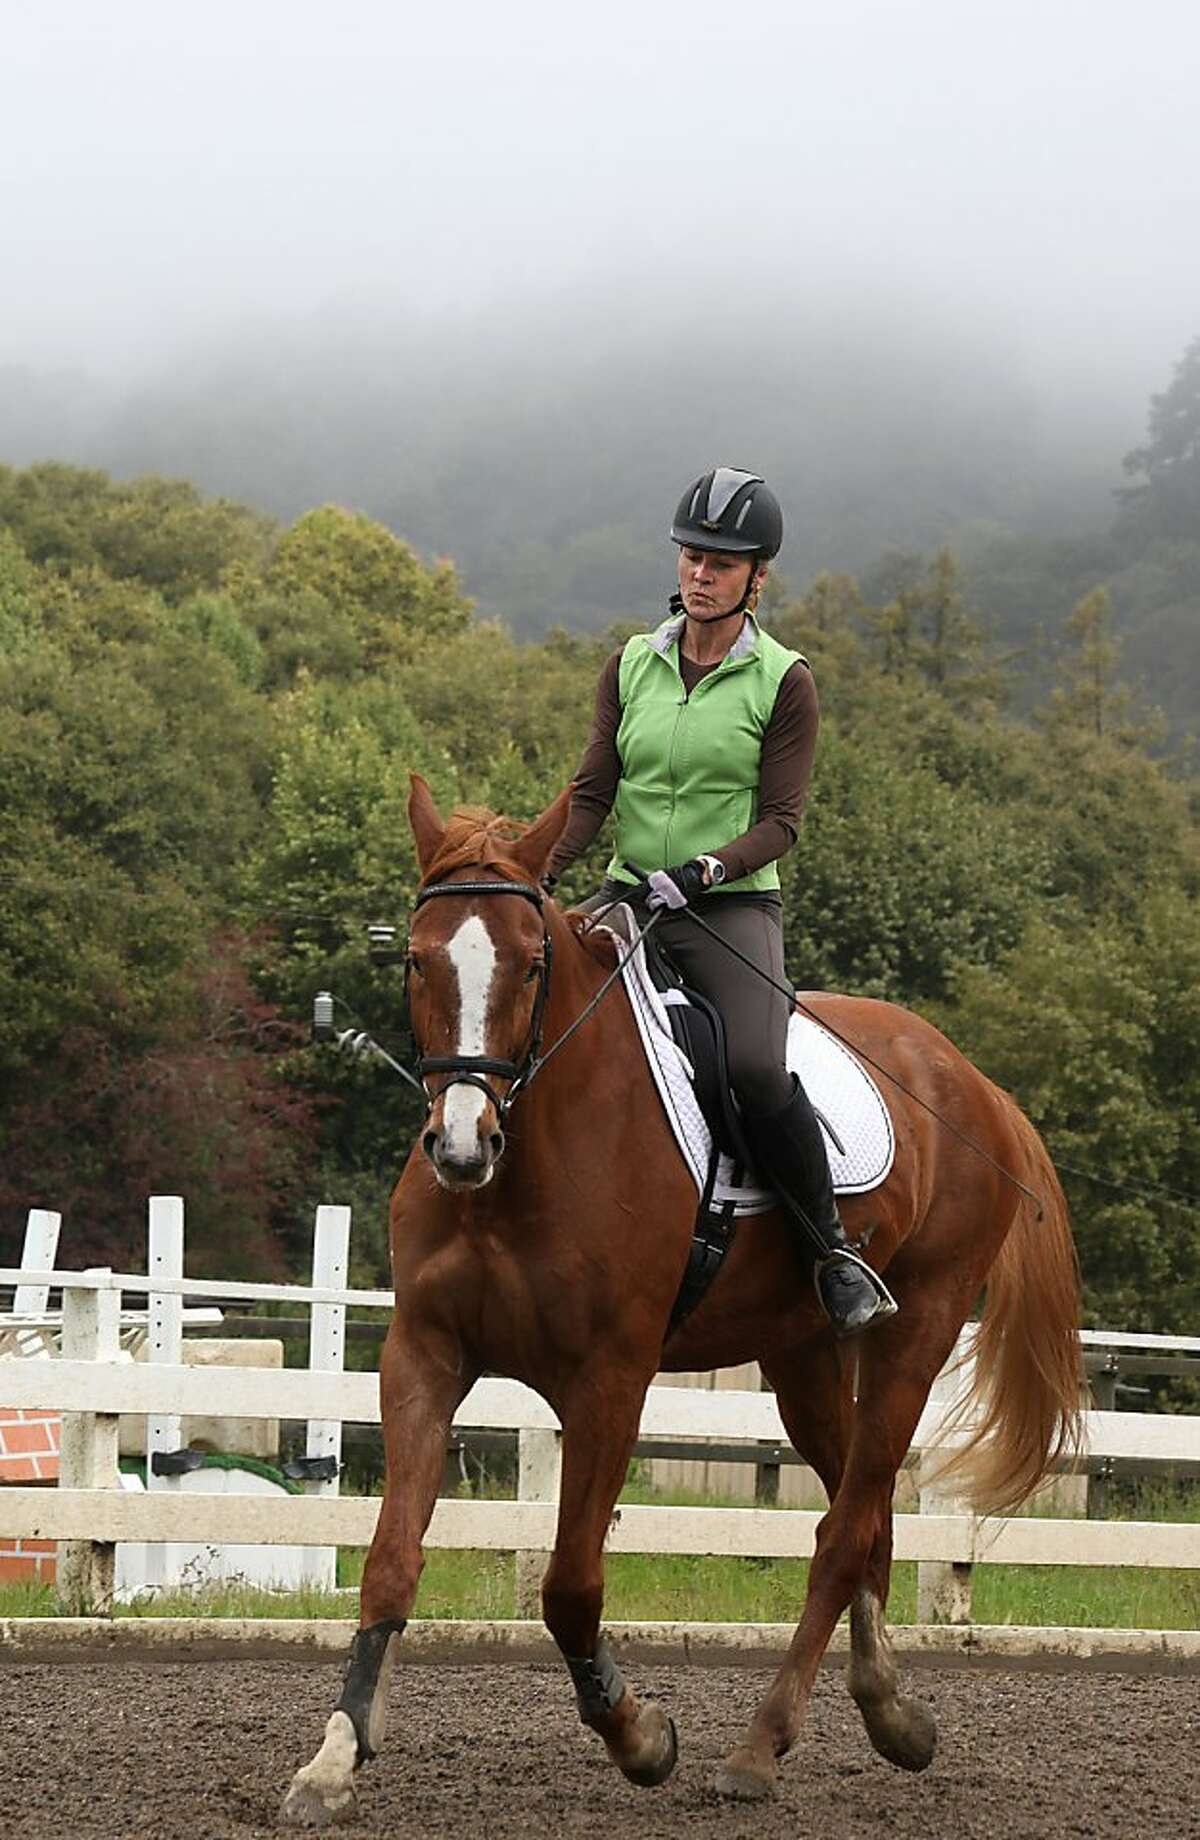 Alison Townley training with her horse, Aramu, at Skyline Ranch Equestrian Center in the Oakland Hills, Calif., on Wednesday, March 28, 2012.